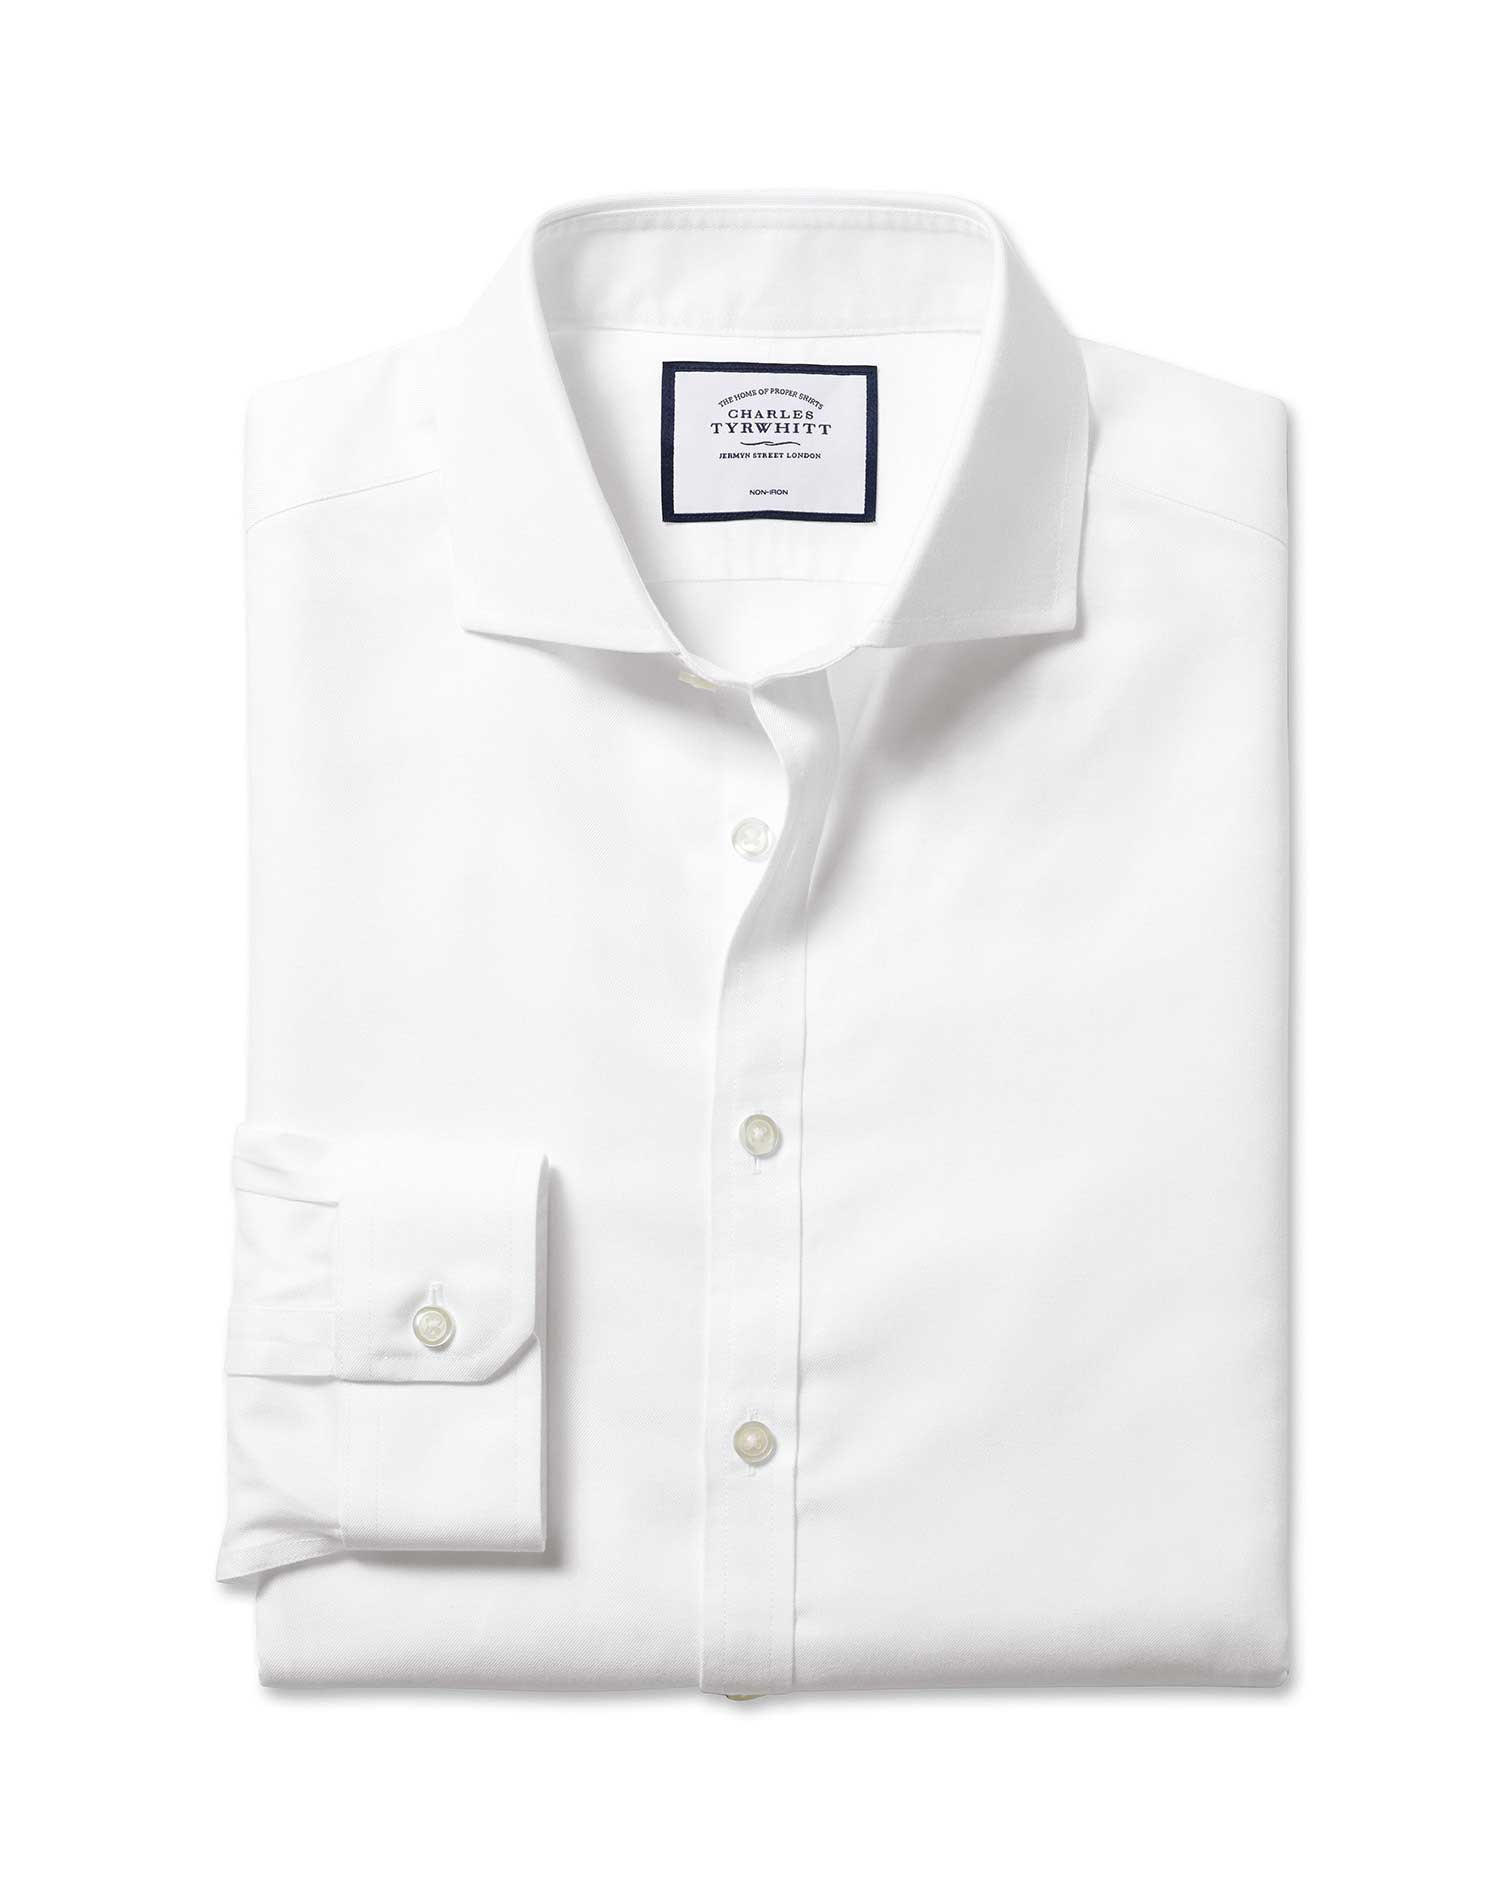 Super slim fit spread collar non iron twill white shirt for Spread collar dress shirt without tie